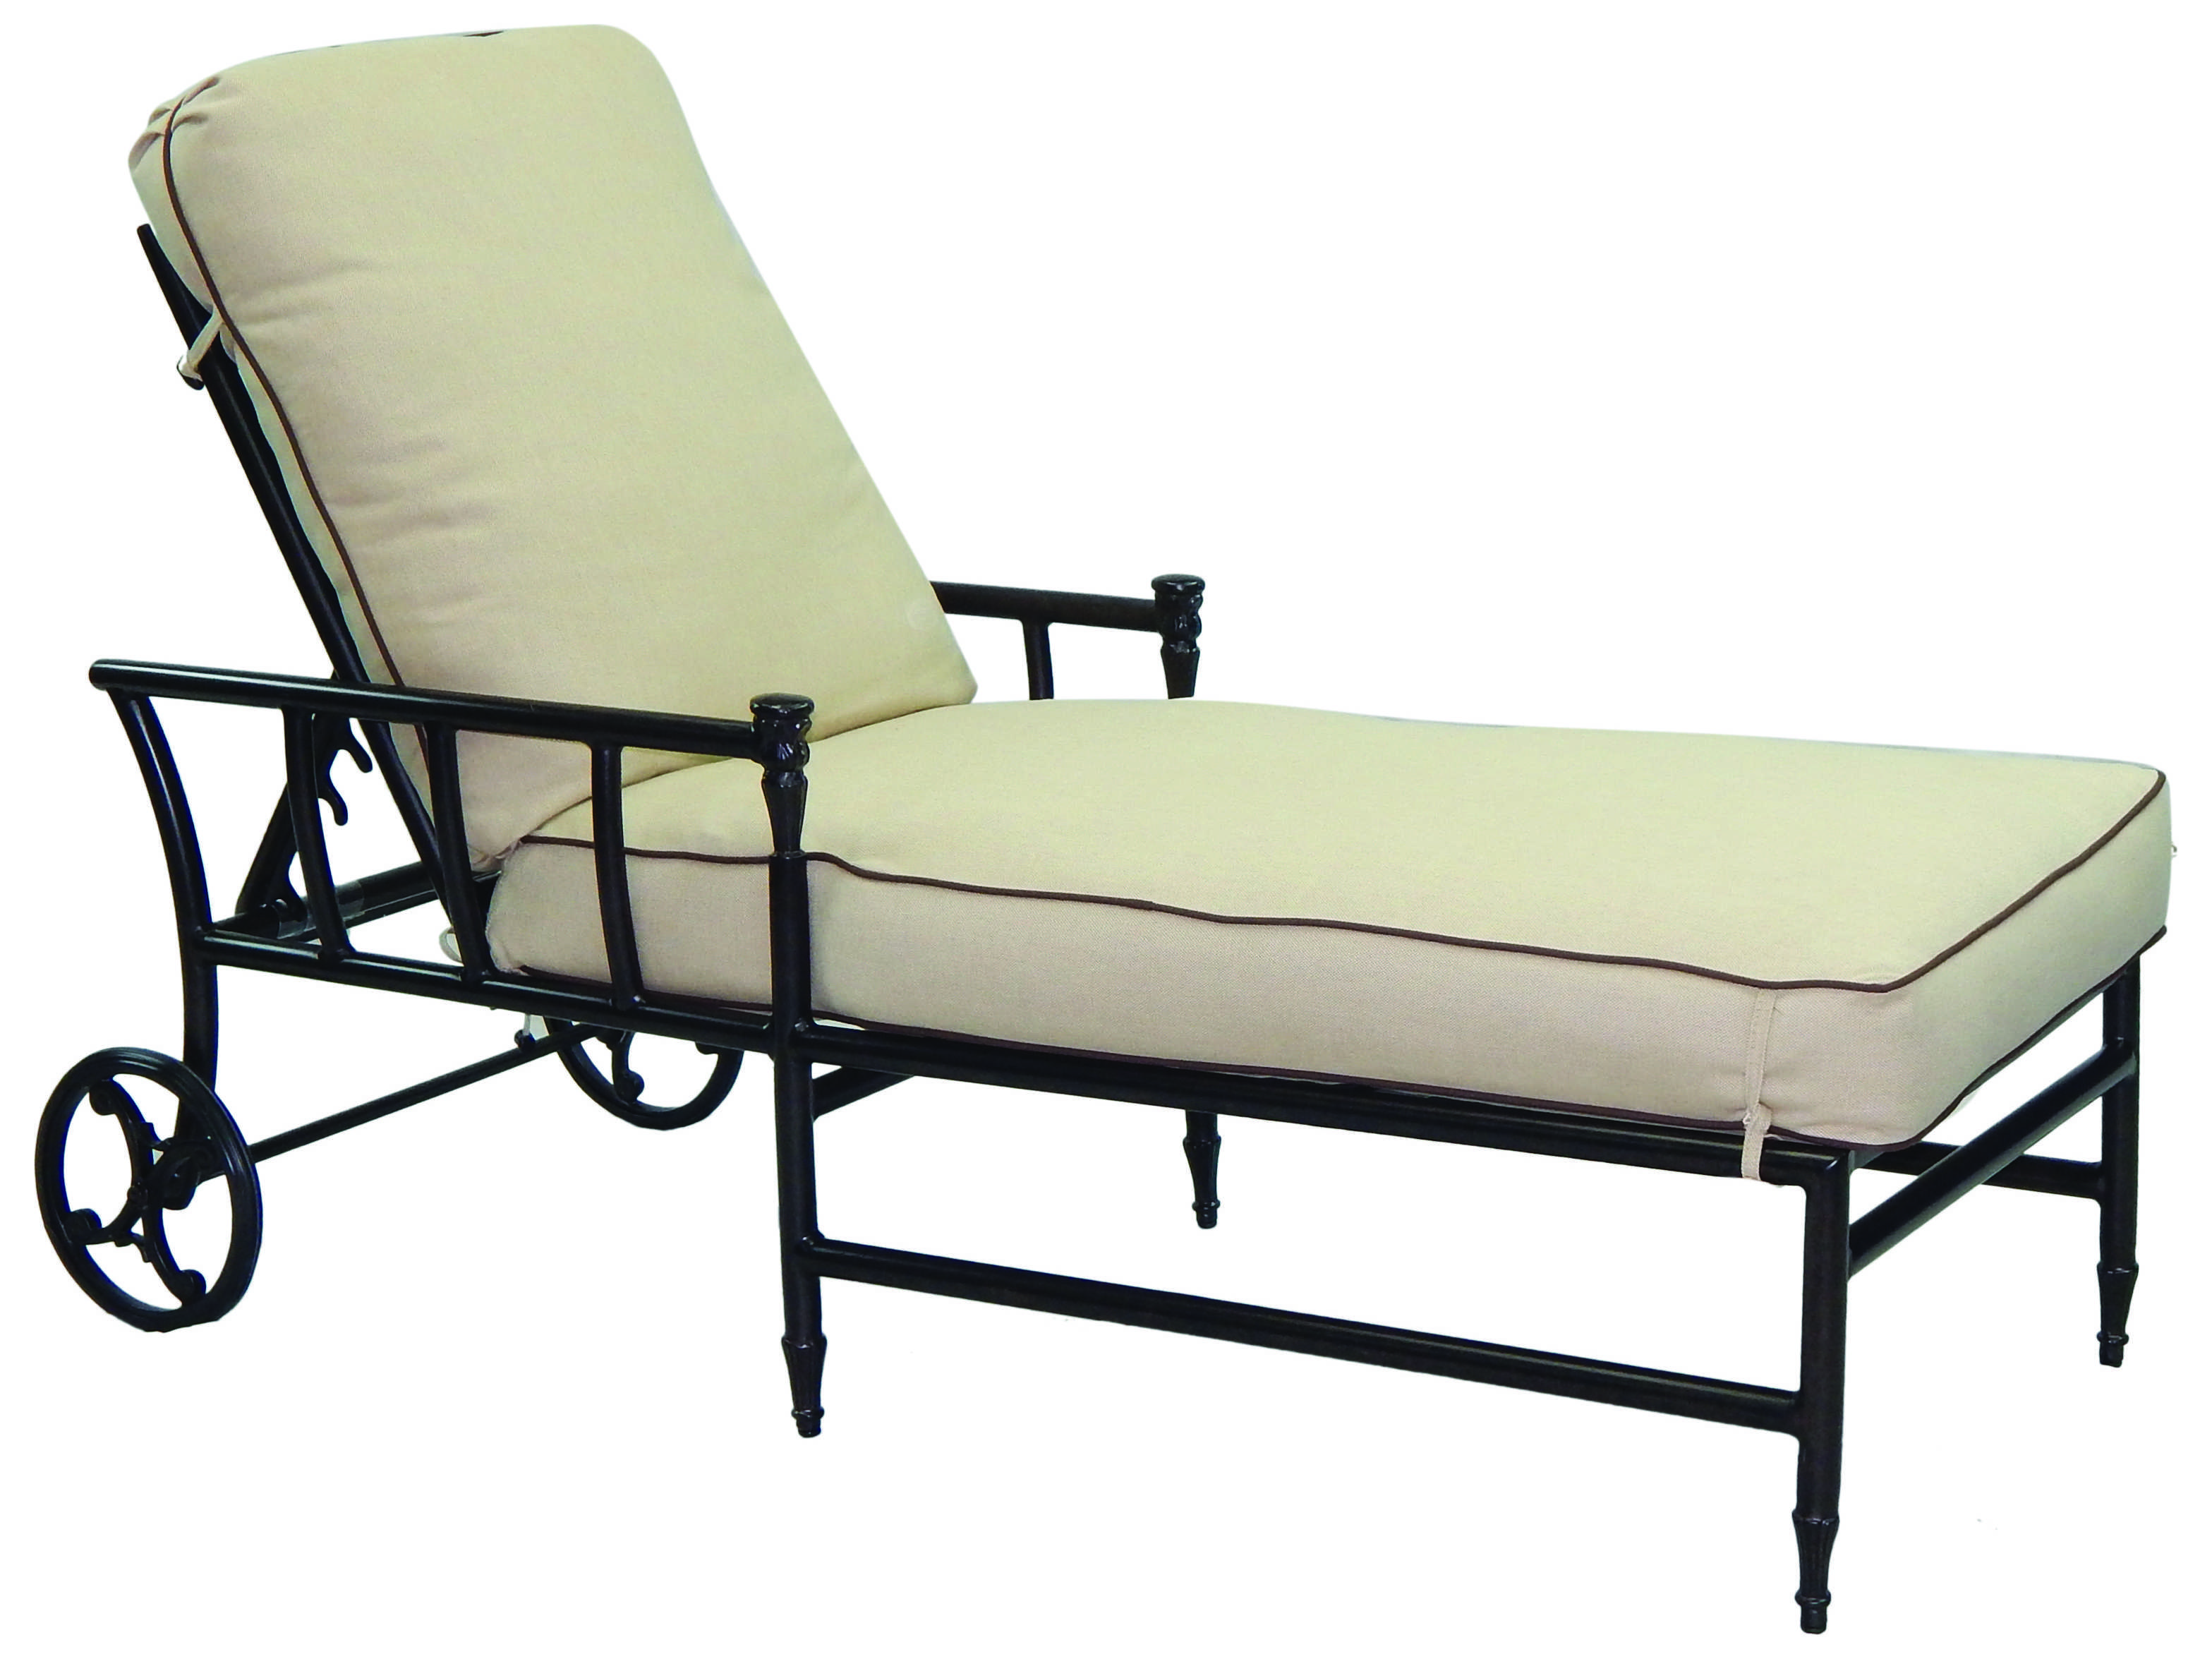 Castelle provence cushion cast aluminum adjustable chaise for Cast aluminum chaise